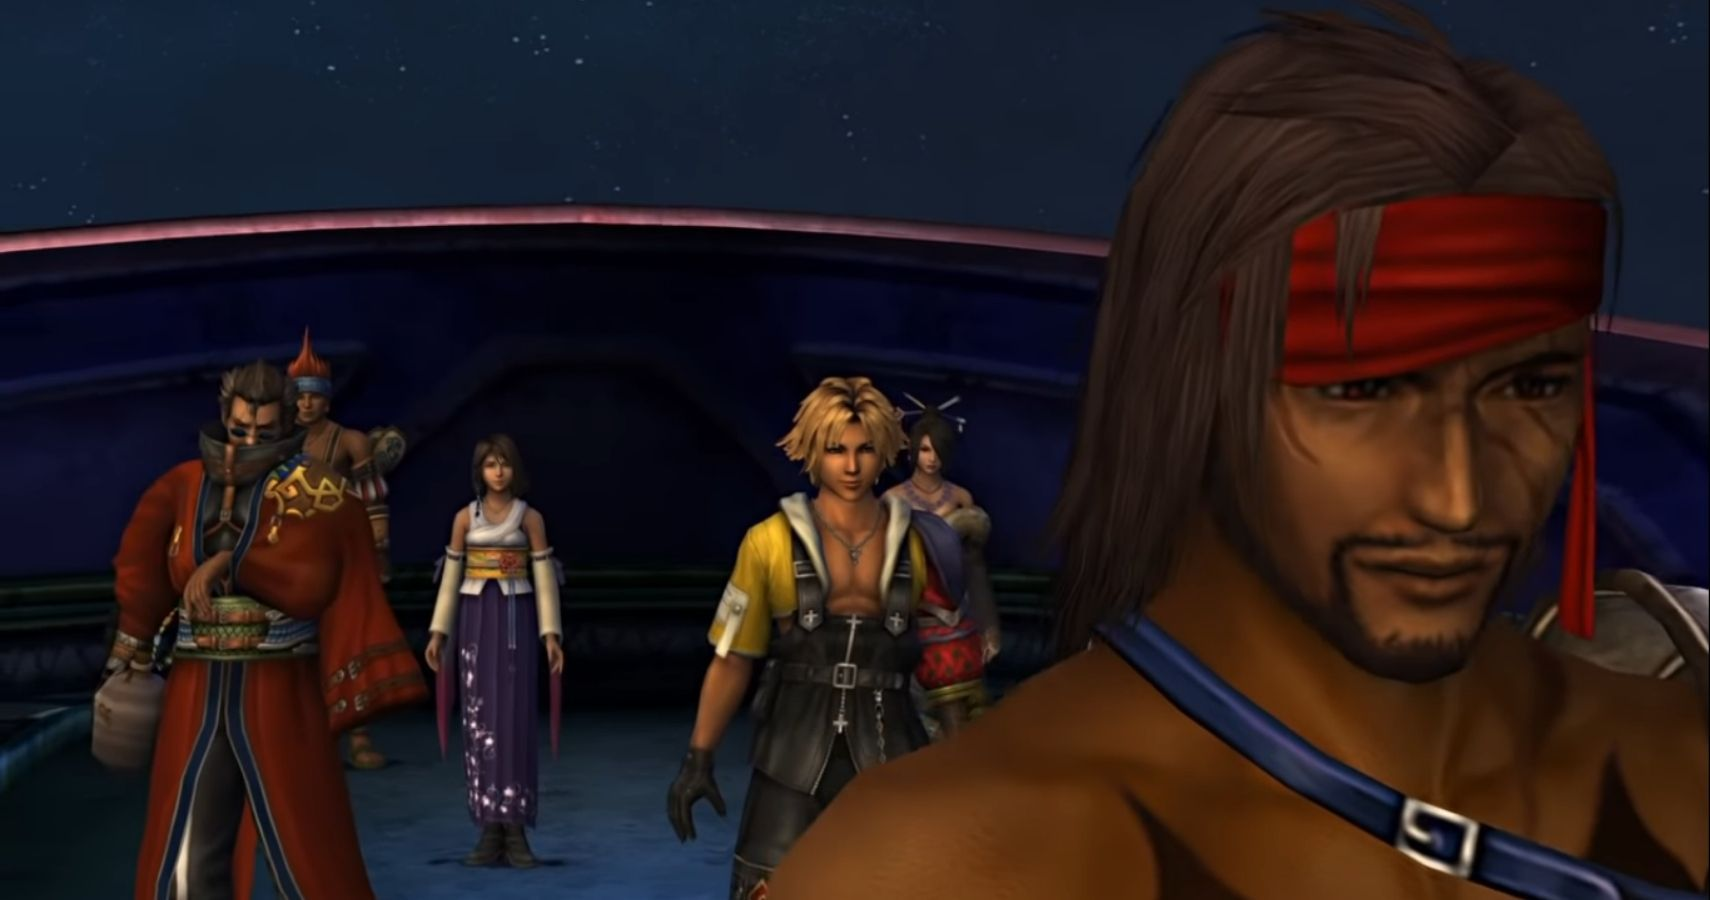 Final Fantasy 10 Perfectly Depicts Strained Family Relationships